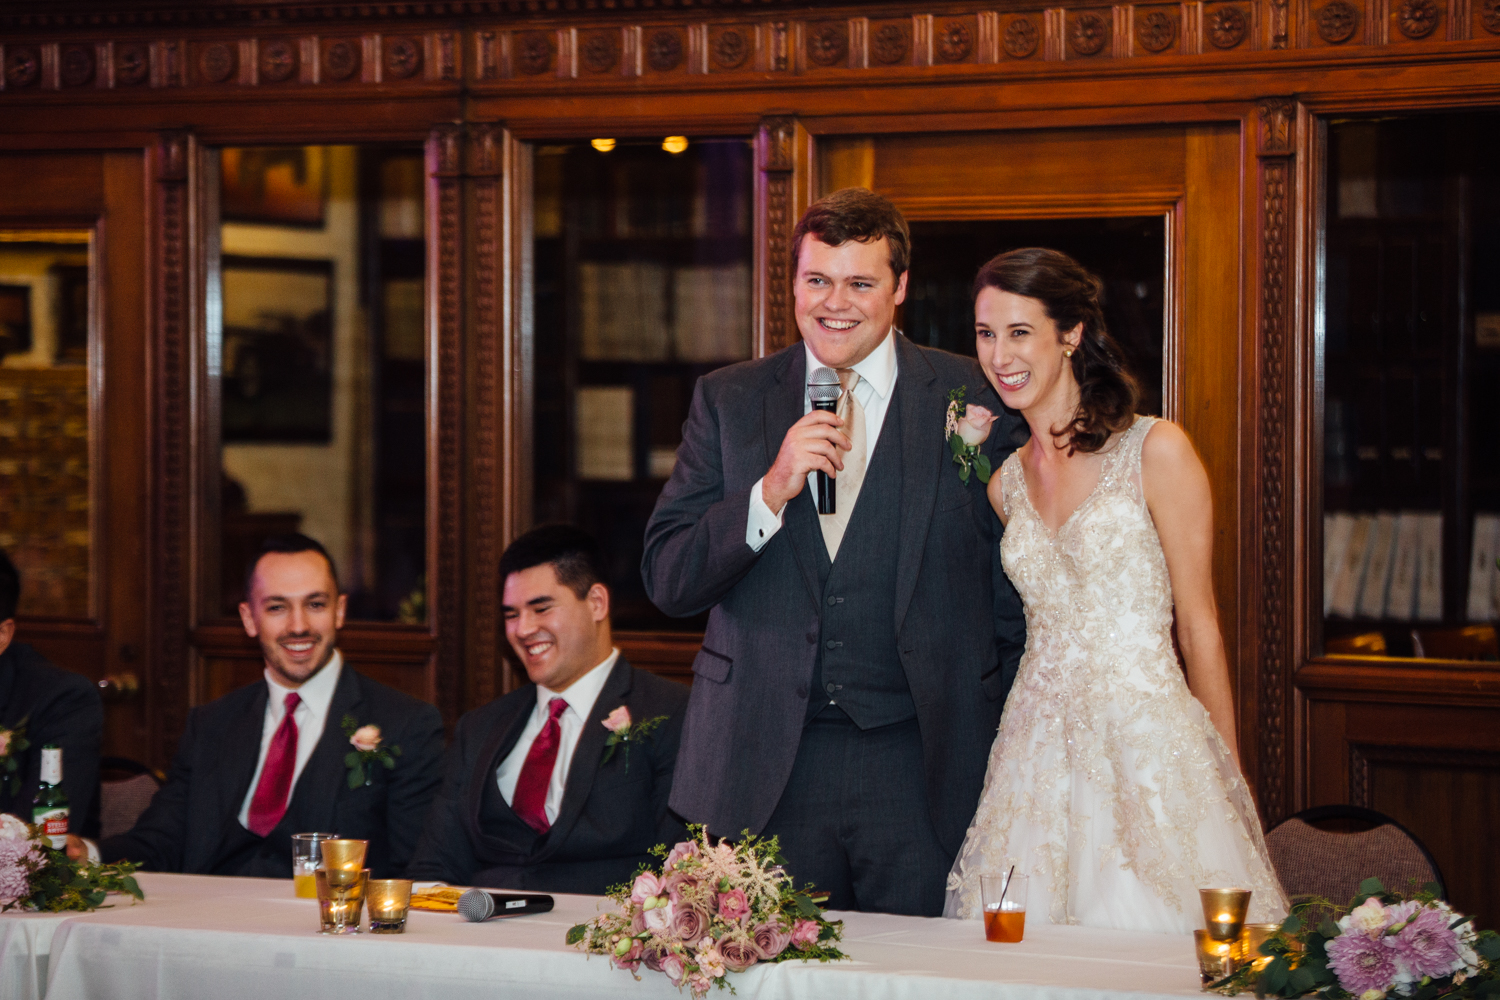 Fun, Intimate Spring Wedding by Corrie Mick Photography-89.jpg